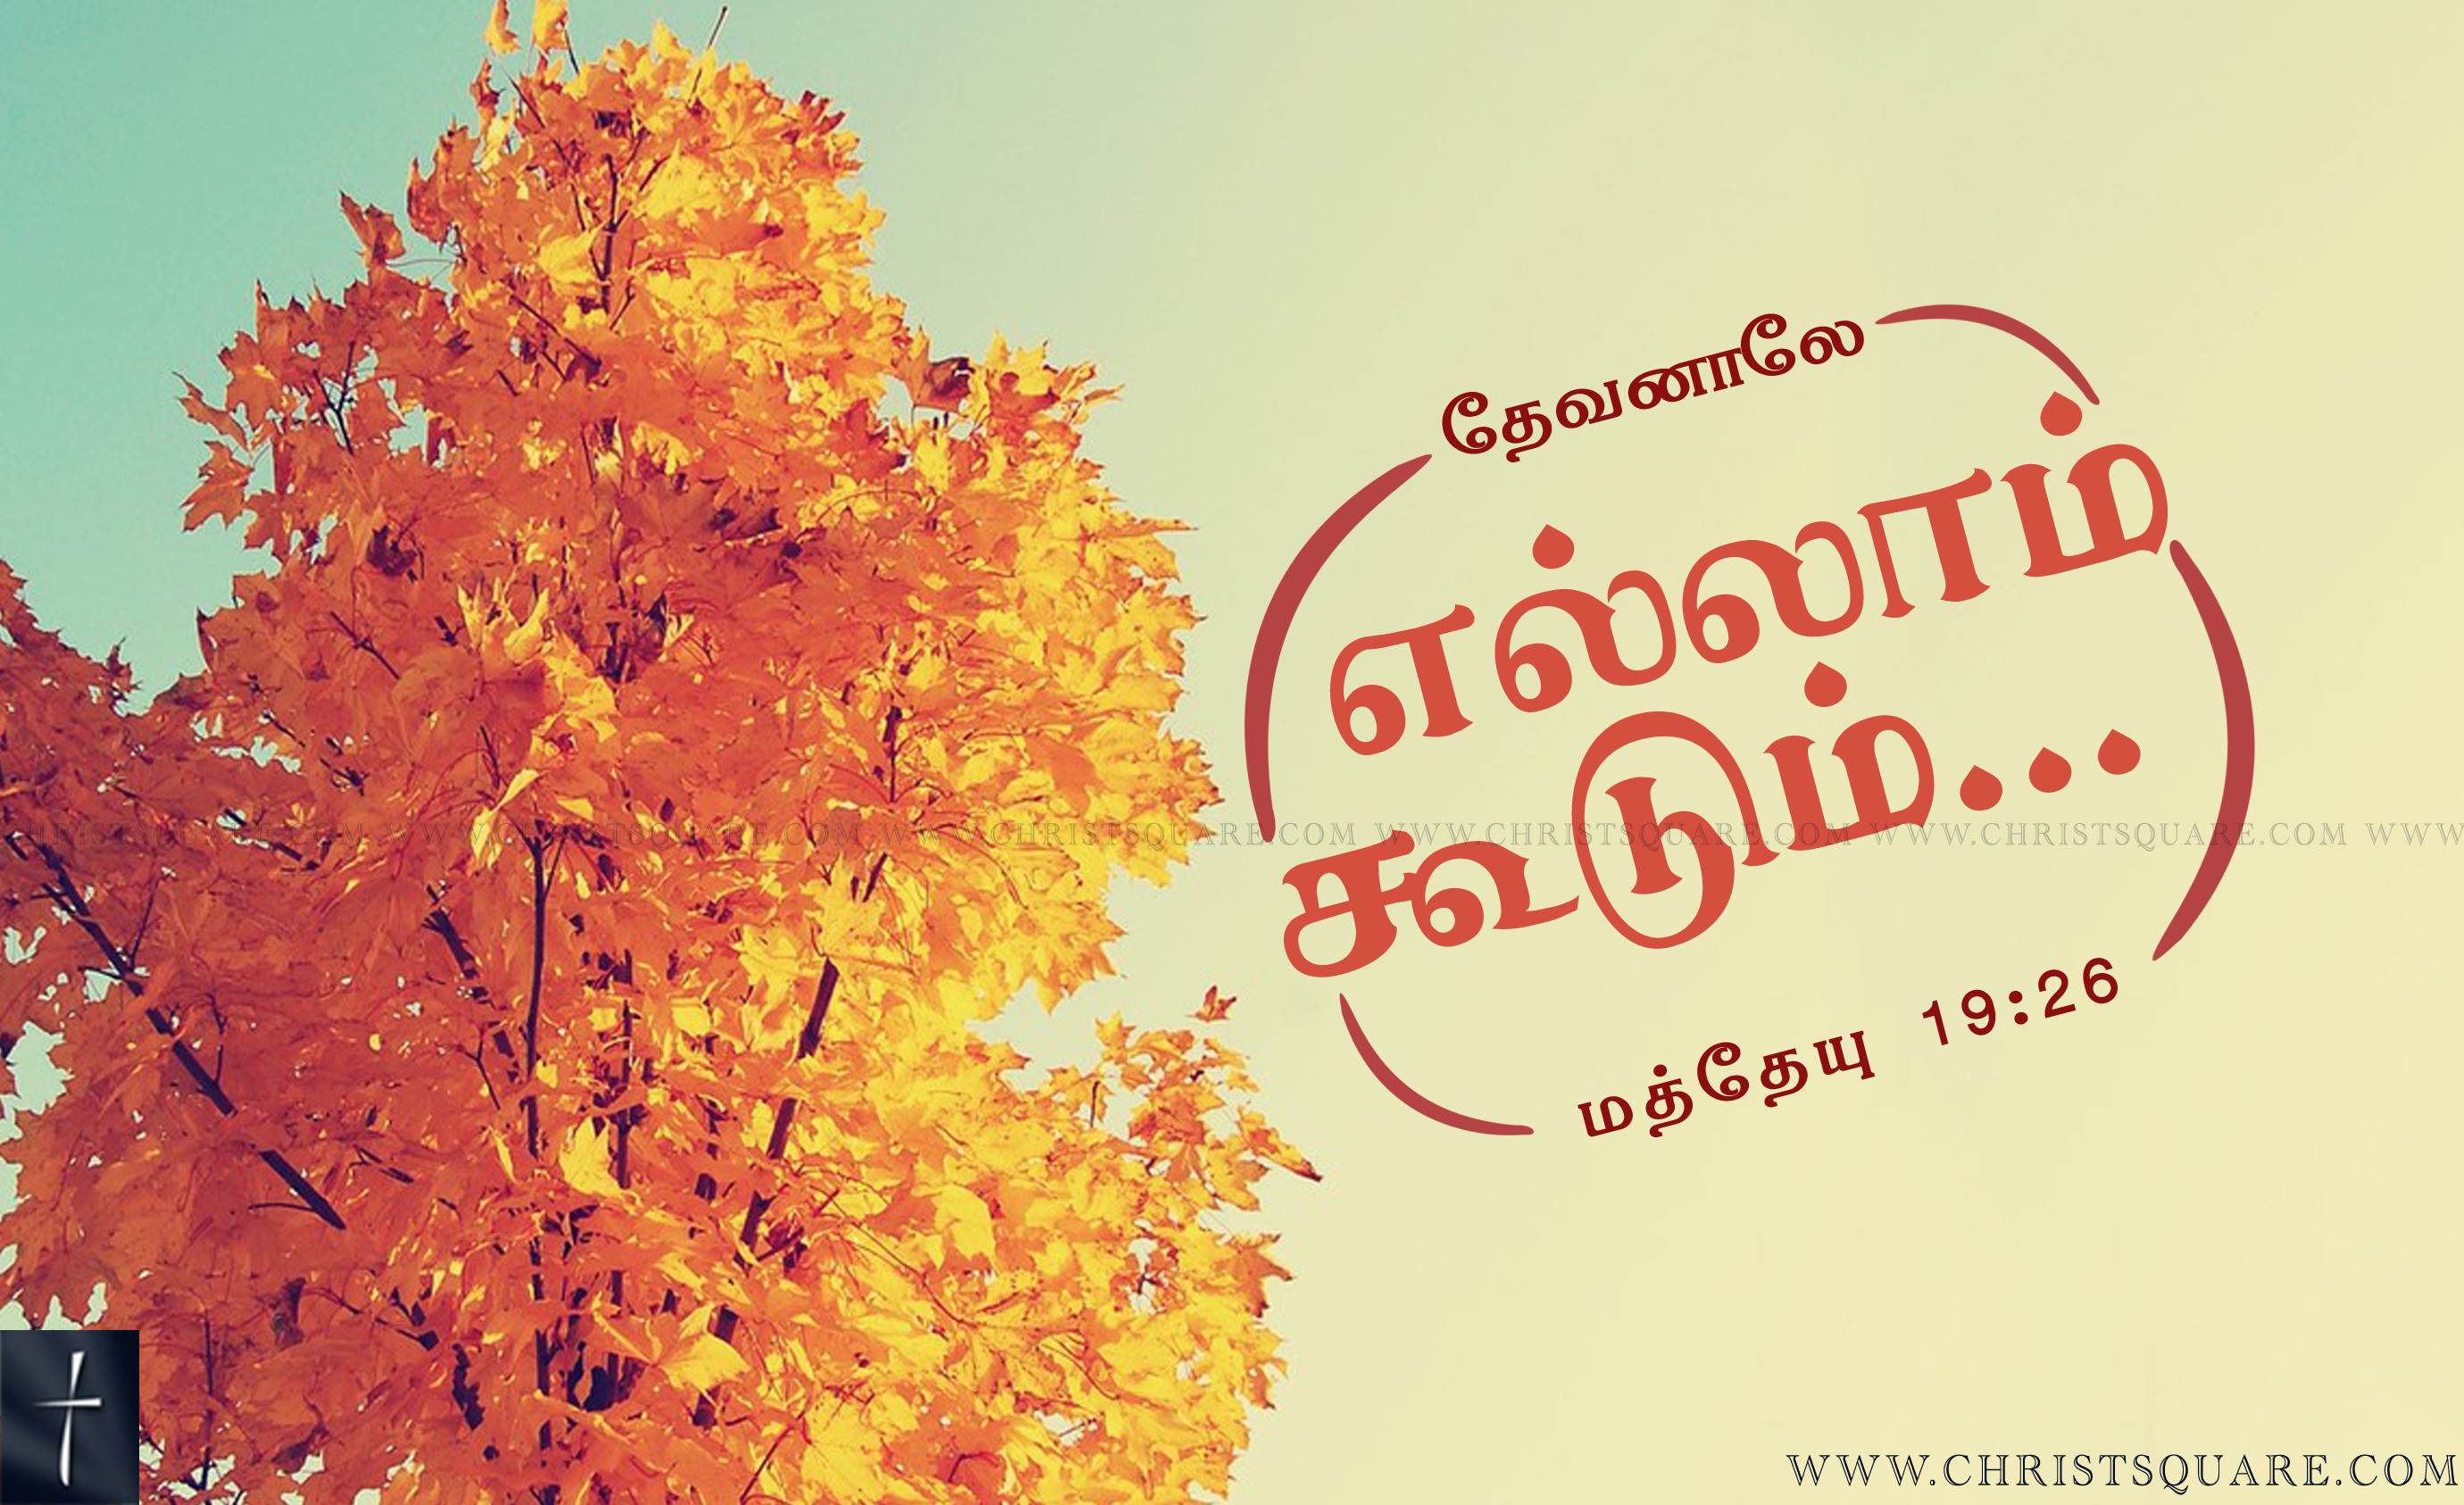 2760x1686 tamil christian wallpaper,tamil bible wallpaper,tamil bible image,tamil  bible